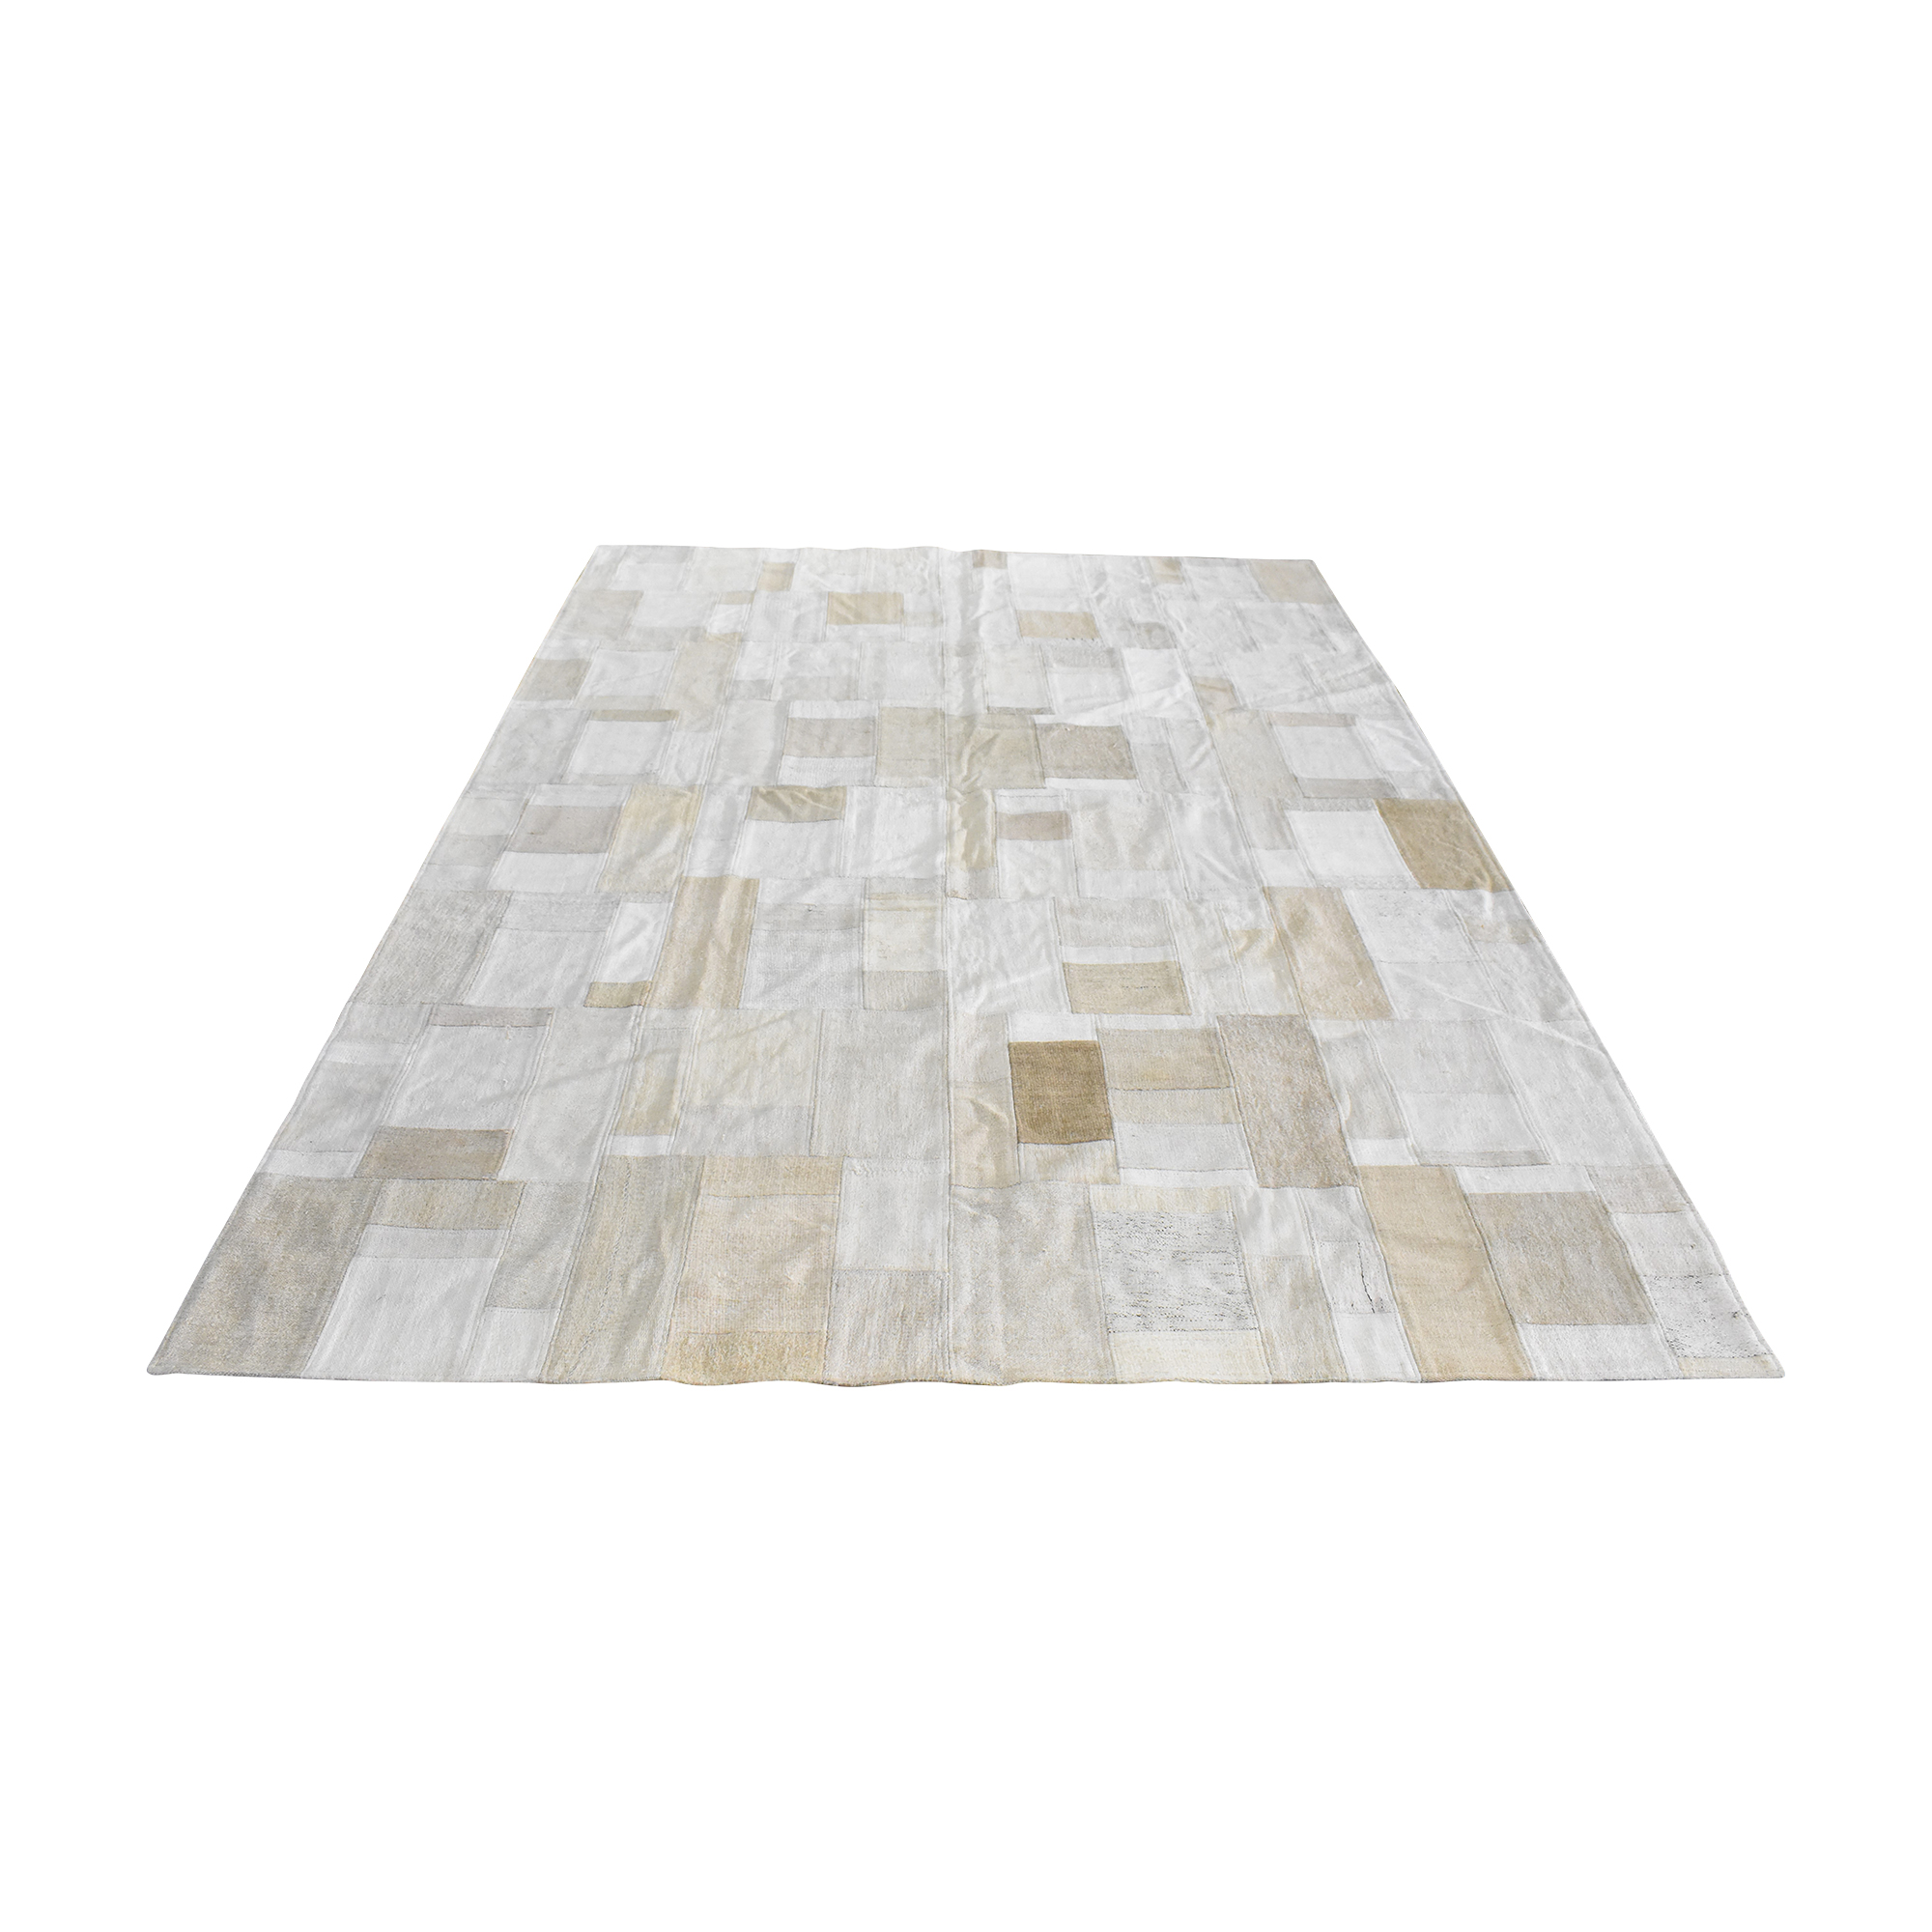 ABC Carpet & Home ABC Carpet & Home Patchwork Style Area Rug price